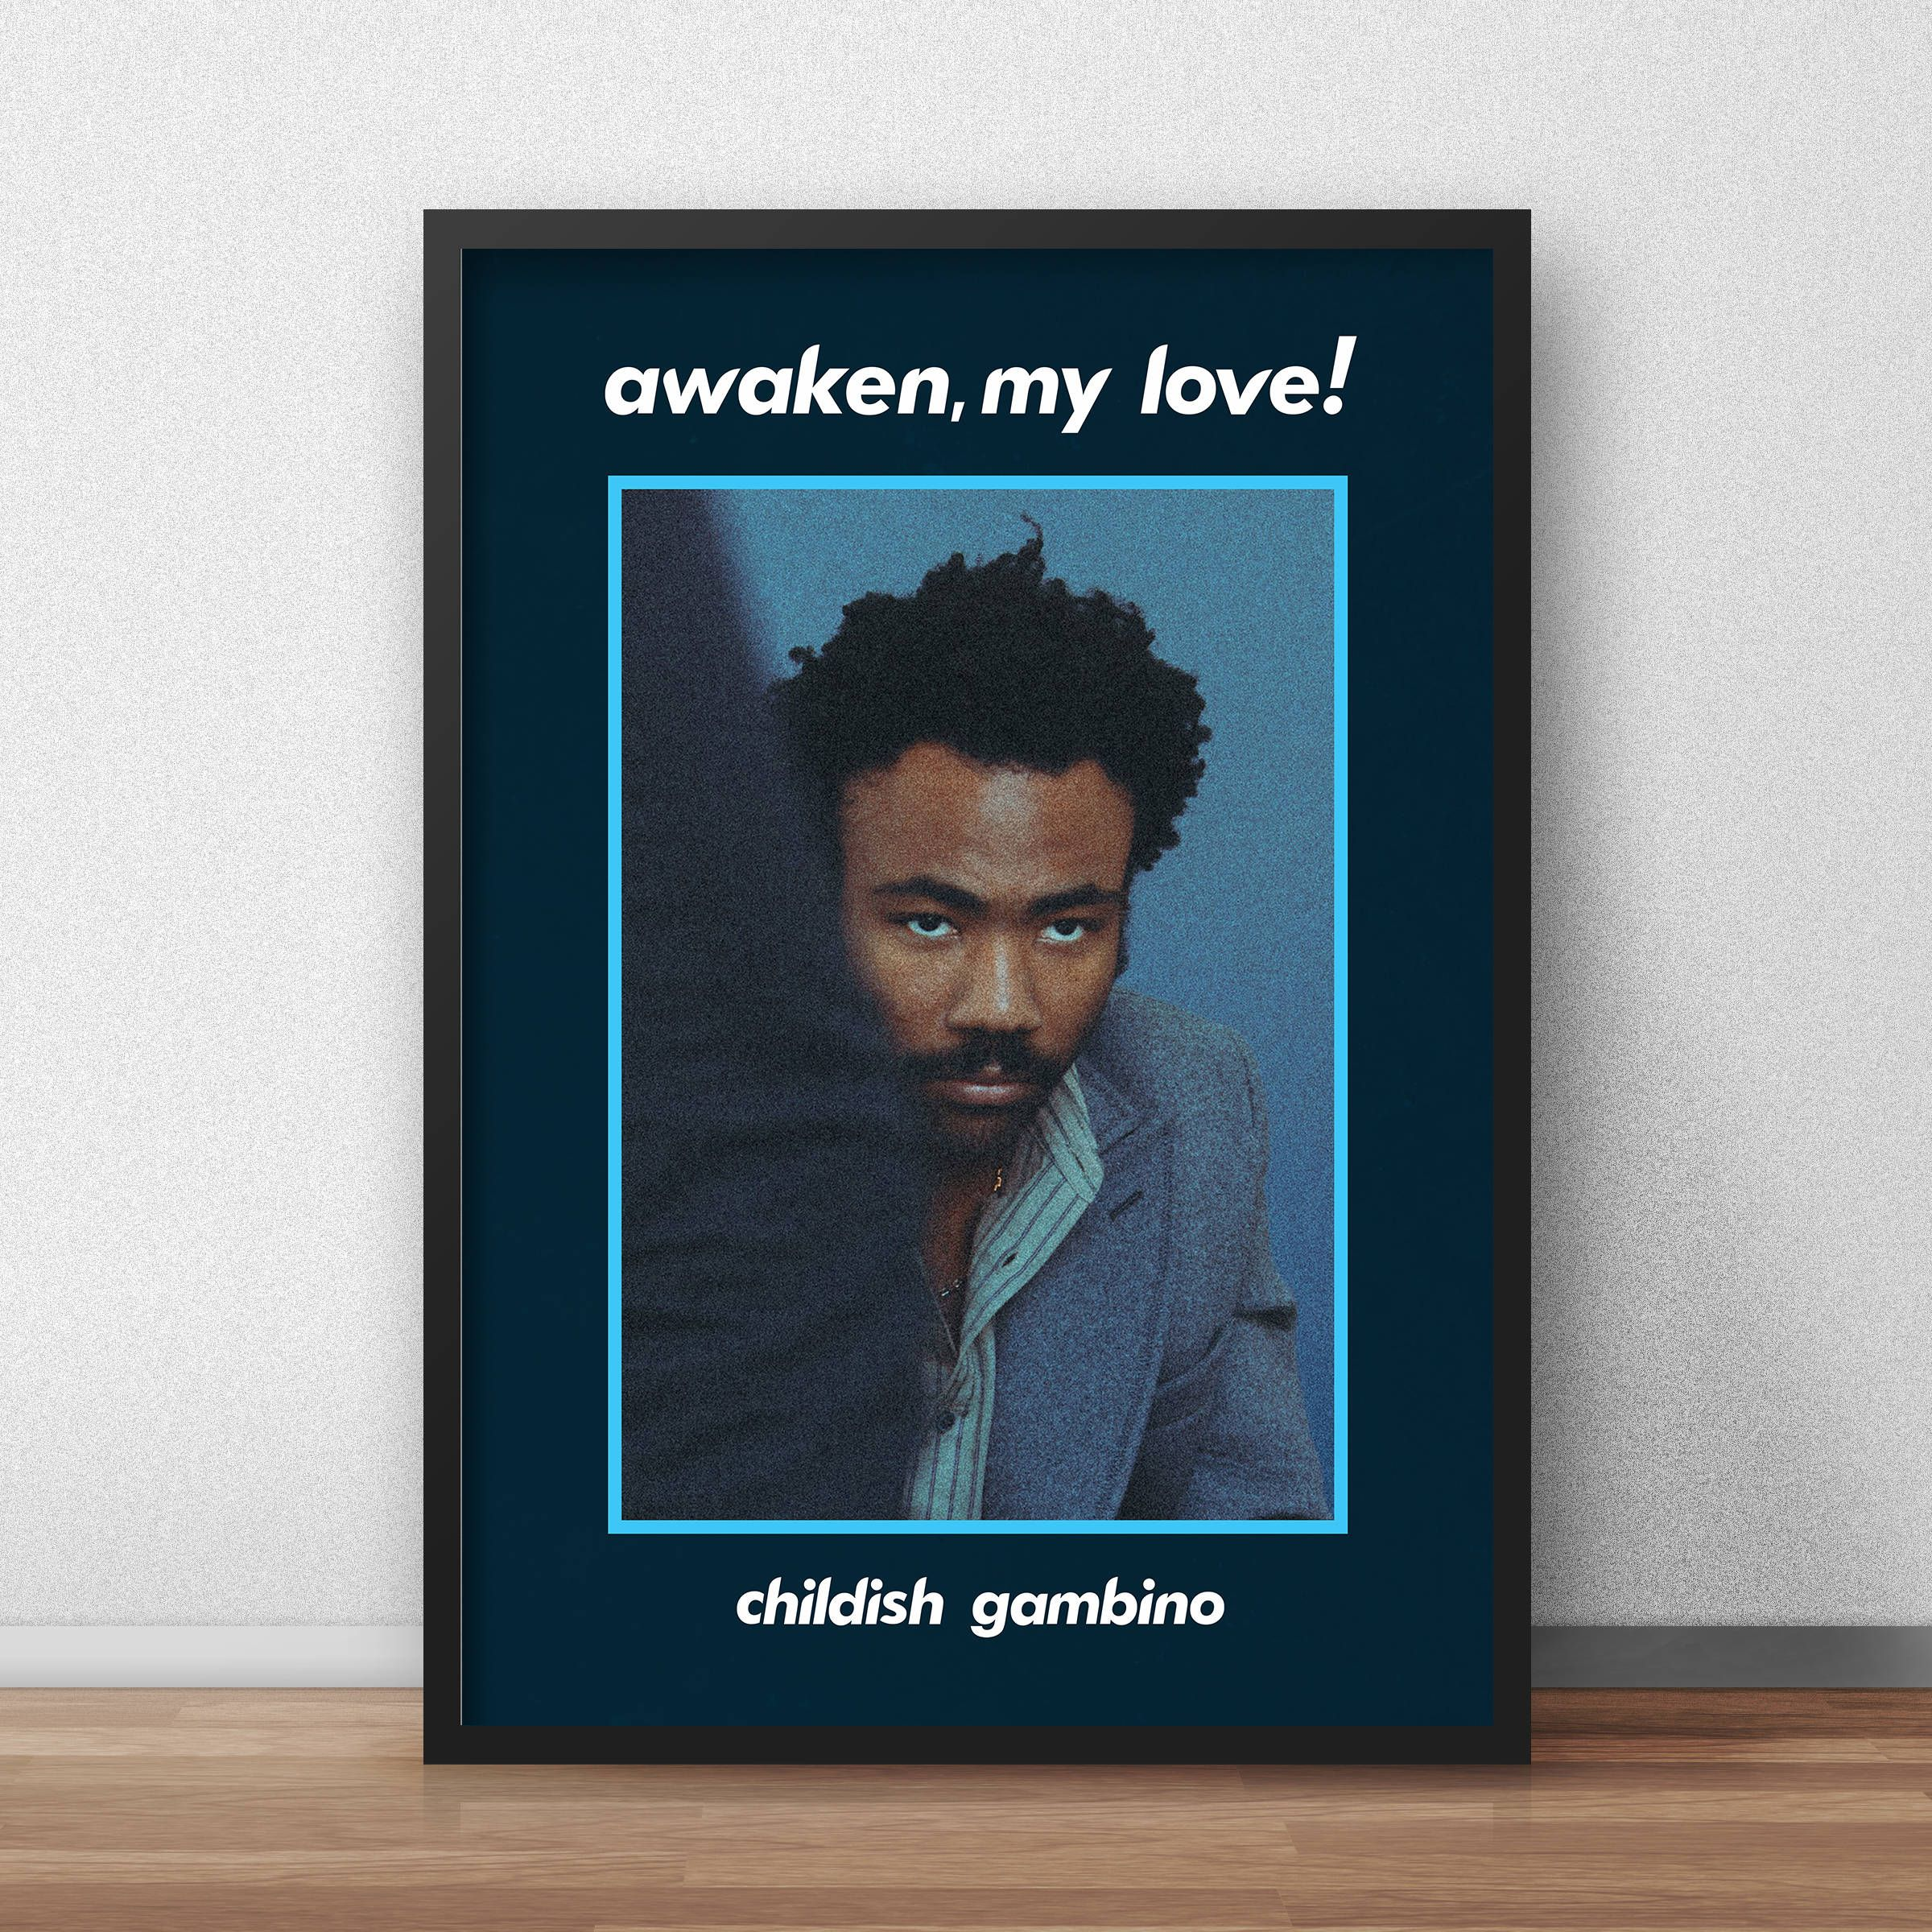 cac715bd857e Childish Gambino Poster, Donald Glover Poster, Childish Gambino, Awaken My  Love Poster, Gambino Print, Childish Gambino Merch, Bino by PrintoutDesign  on ...